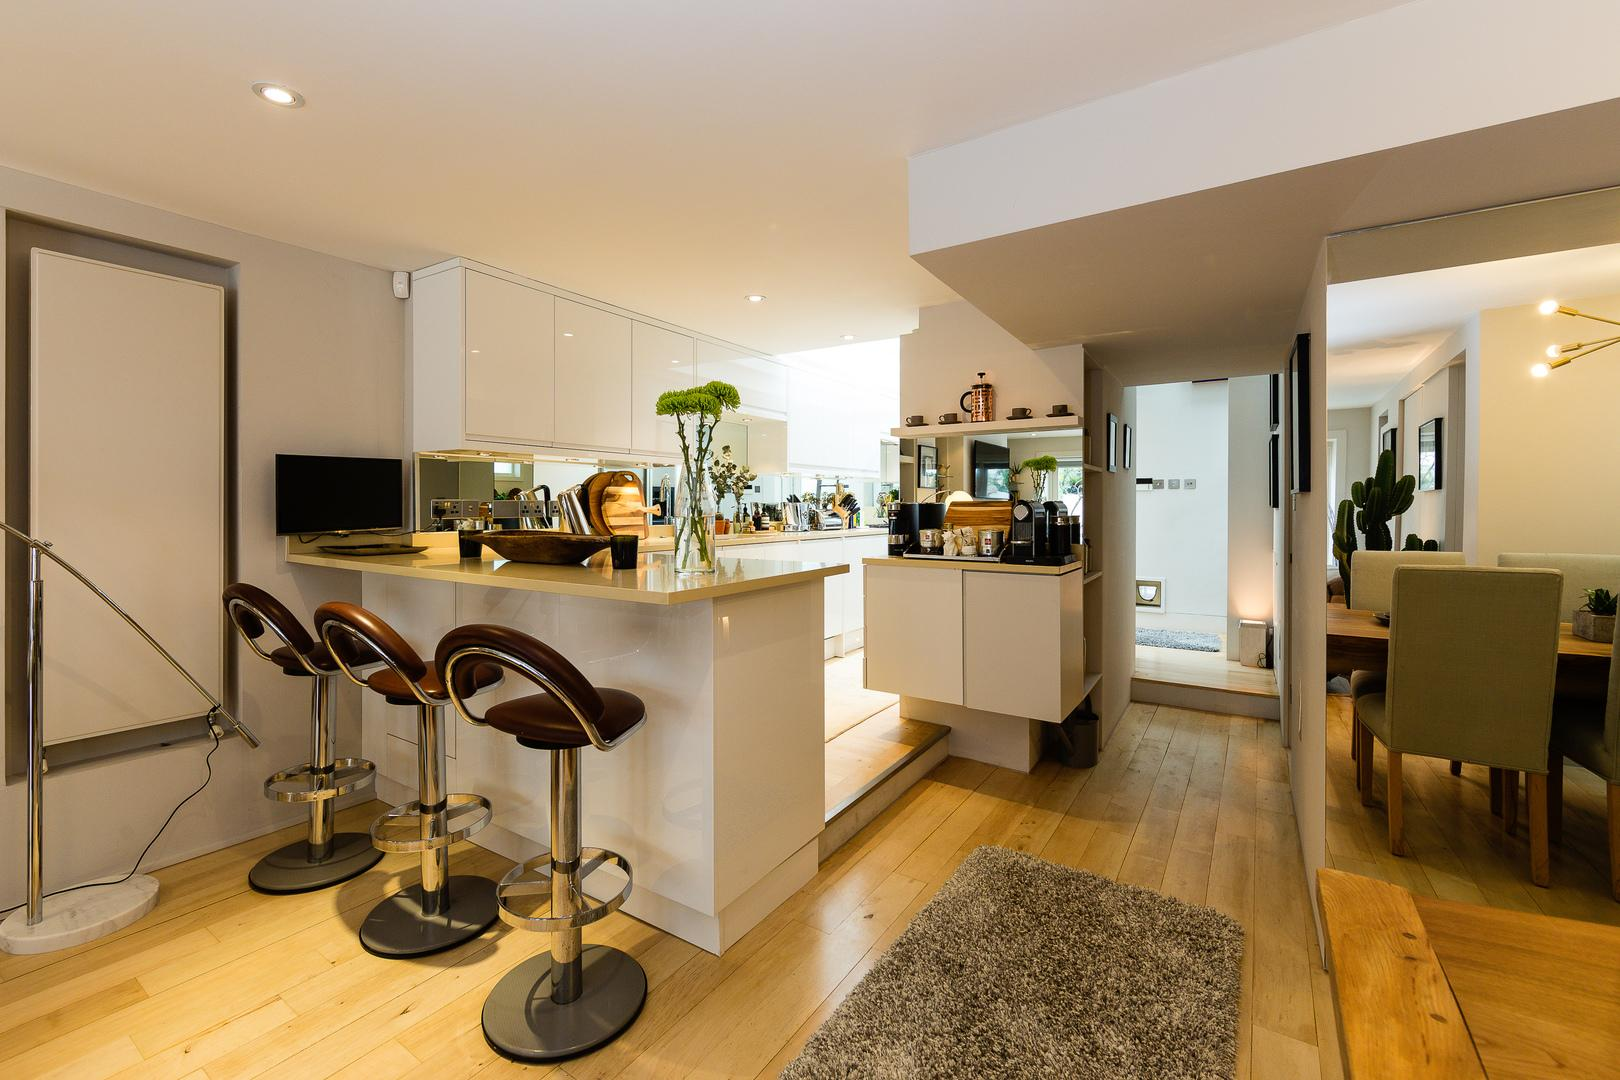 Property Image 2 - Chic Notting Hill House with Stylish Interiors